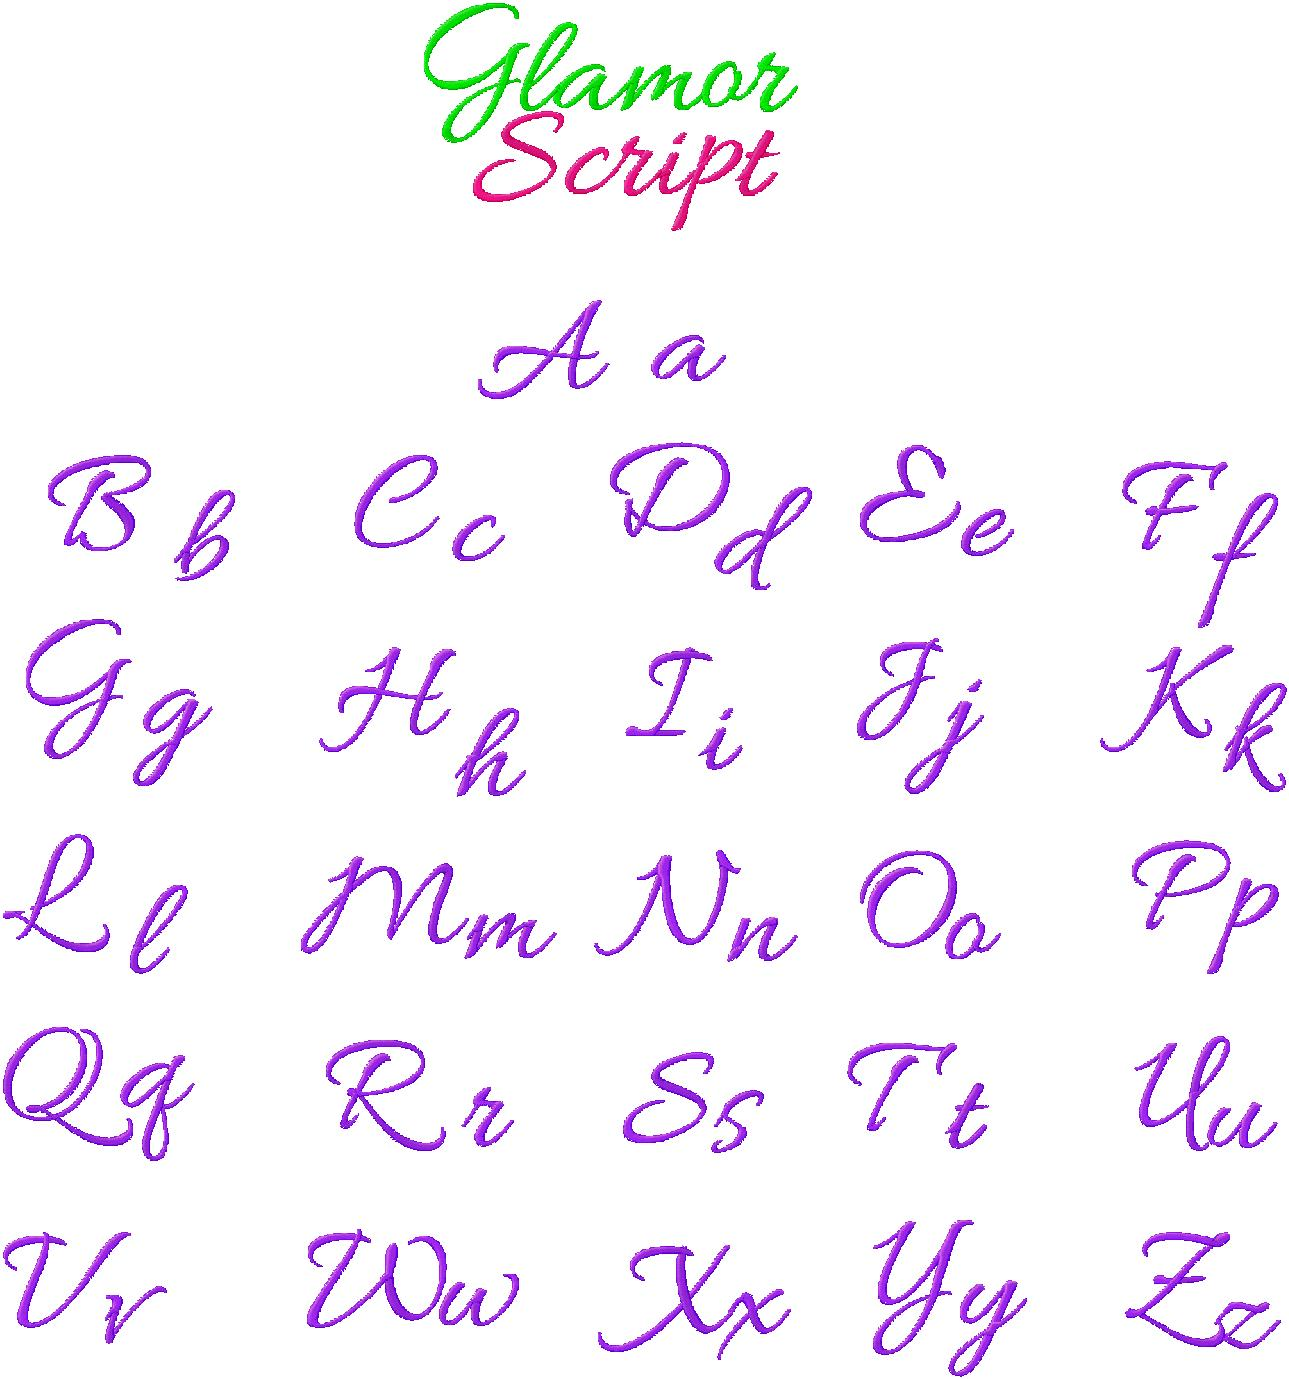 19 Embroidery Cursive Handwriting Fonts Images - Free Cursive ...